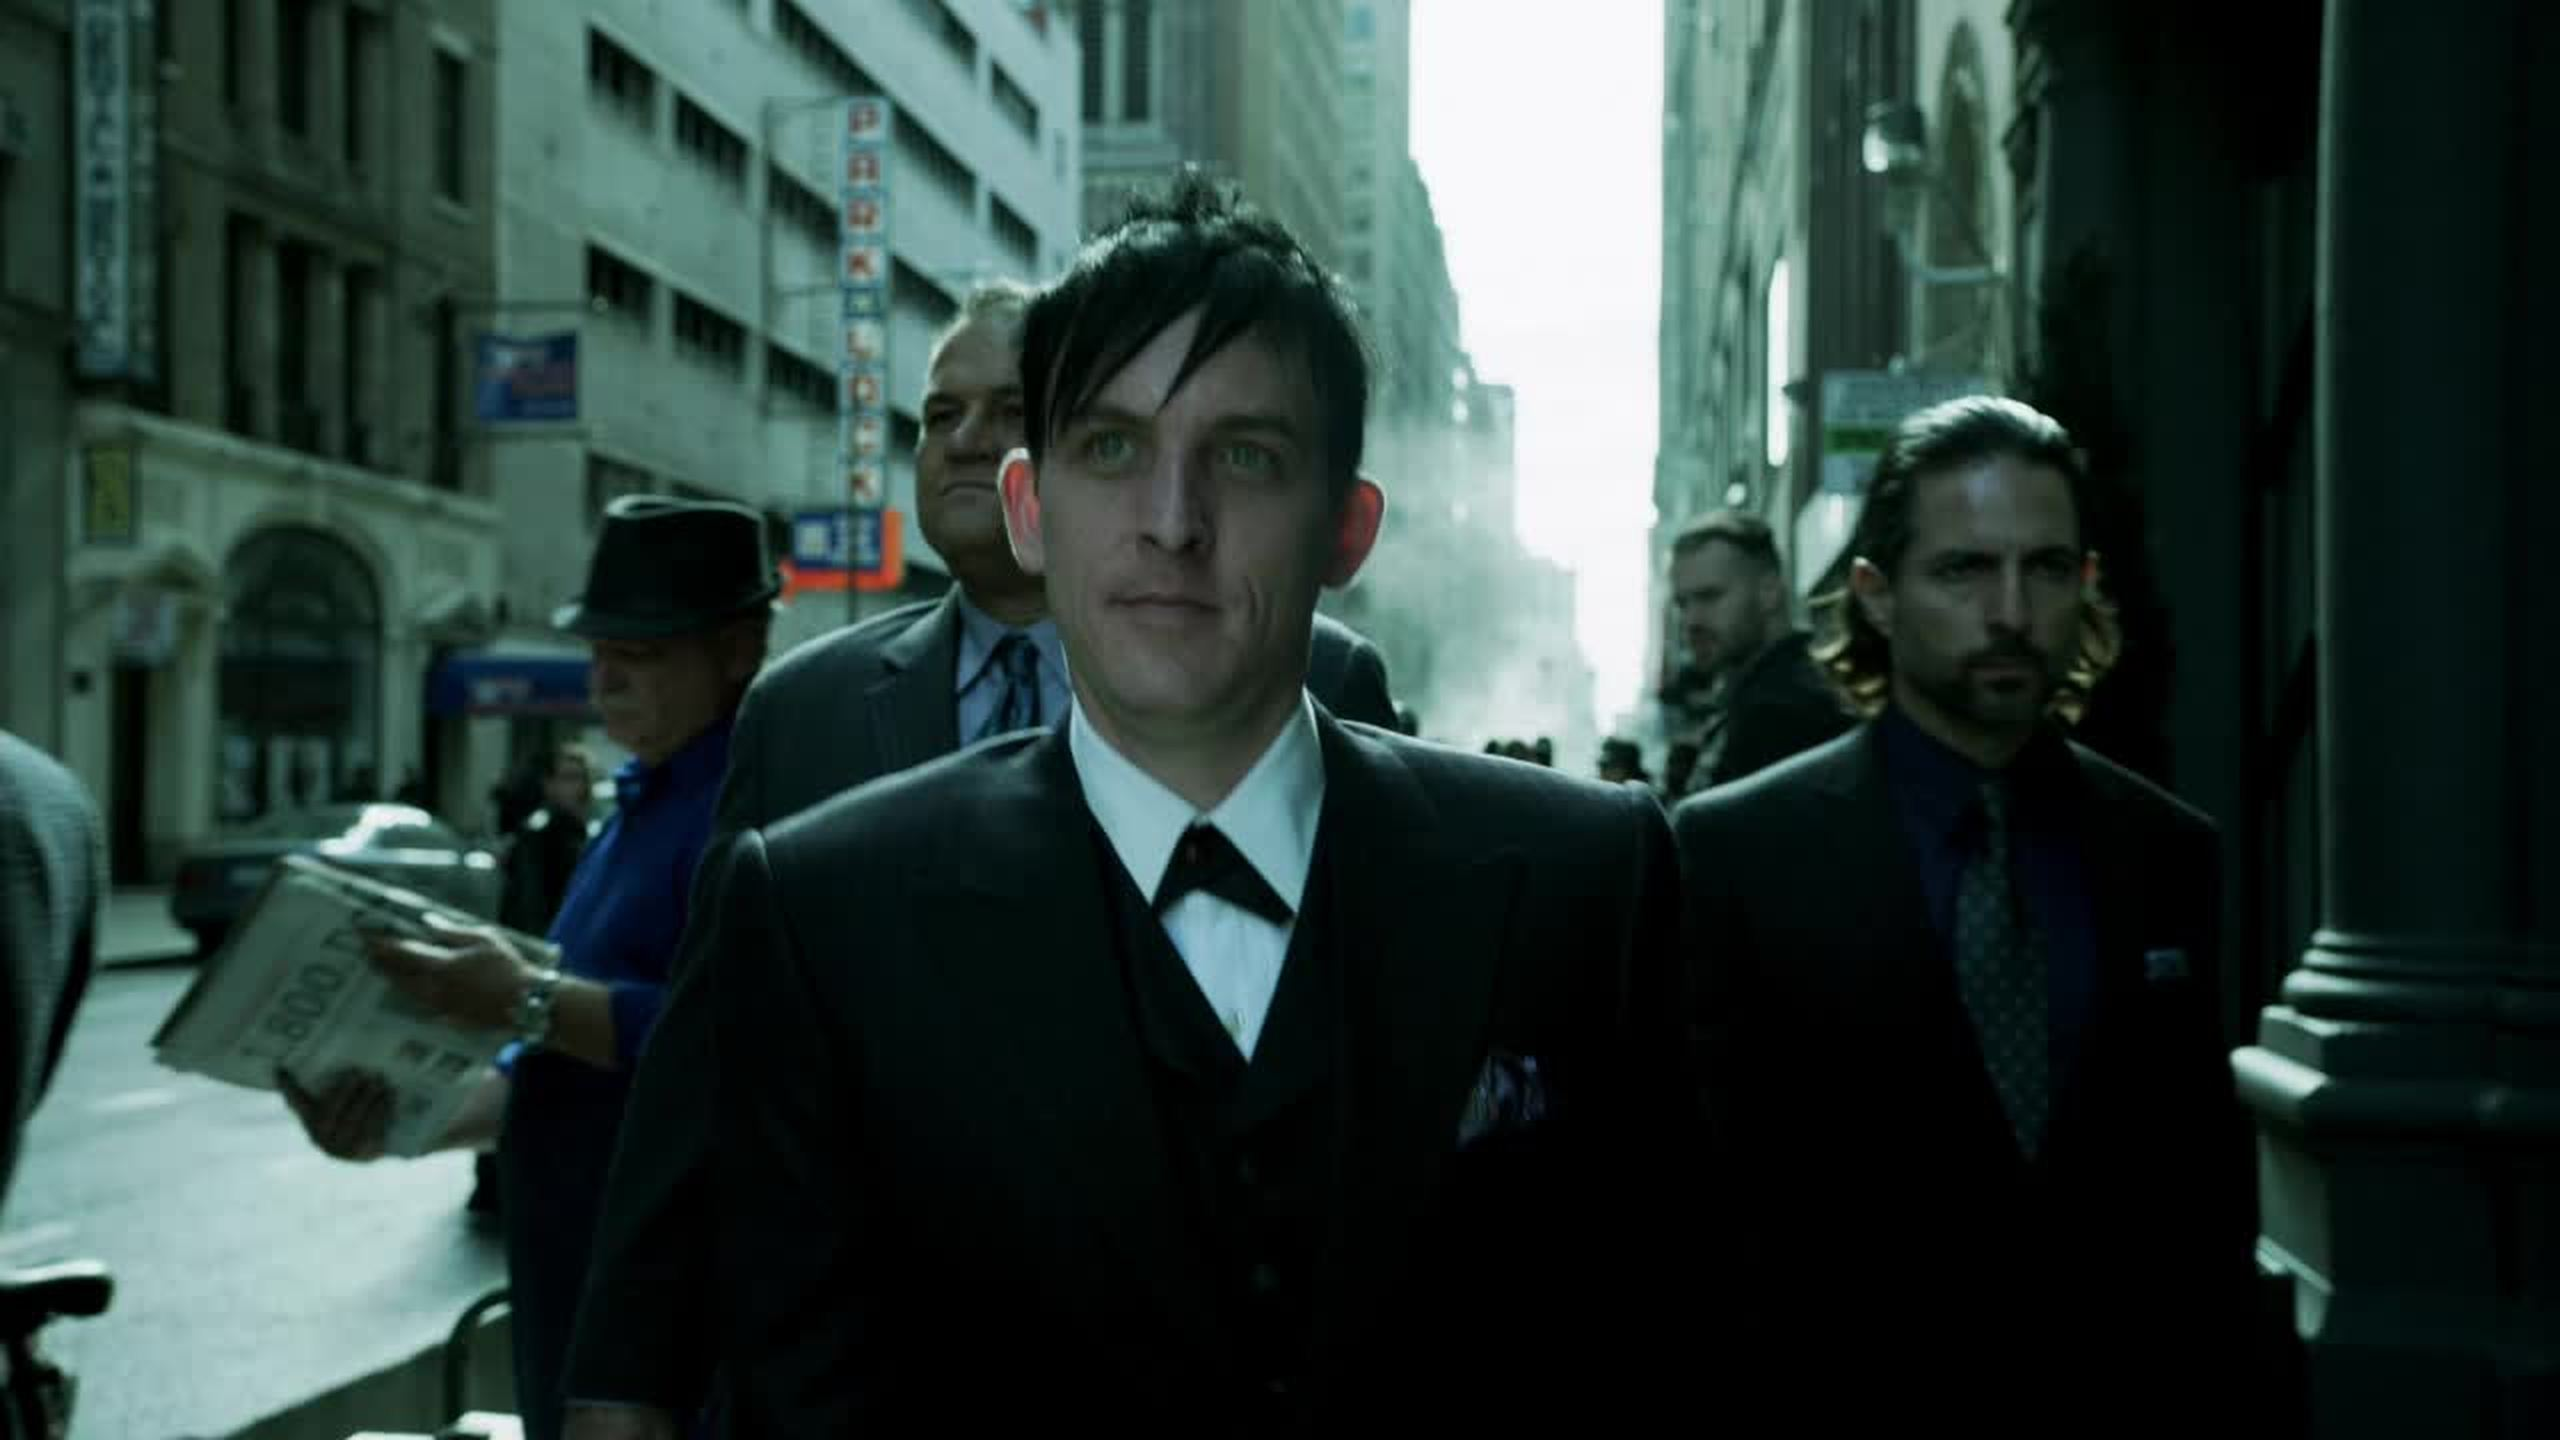 Oswald Cobblep is the best.